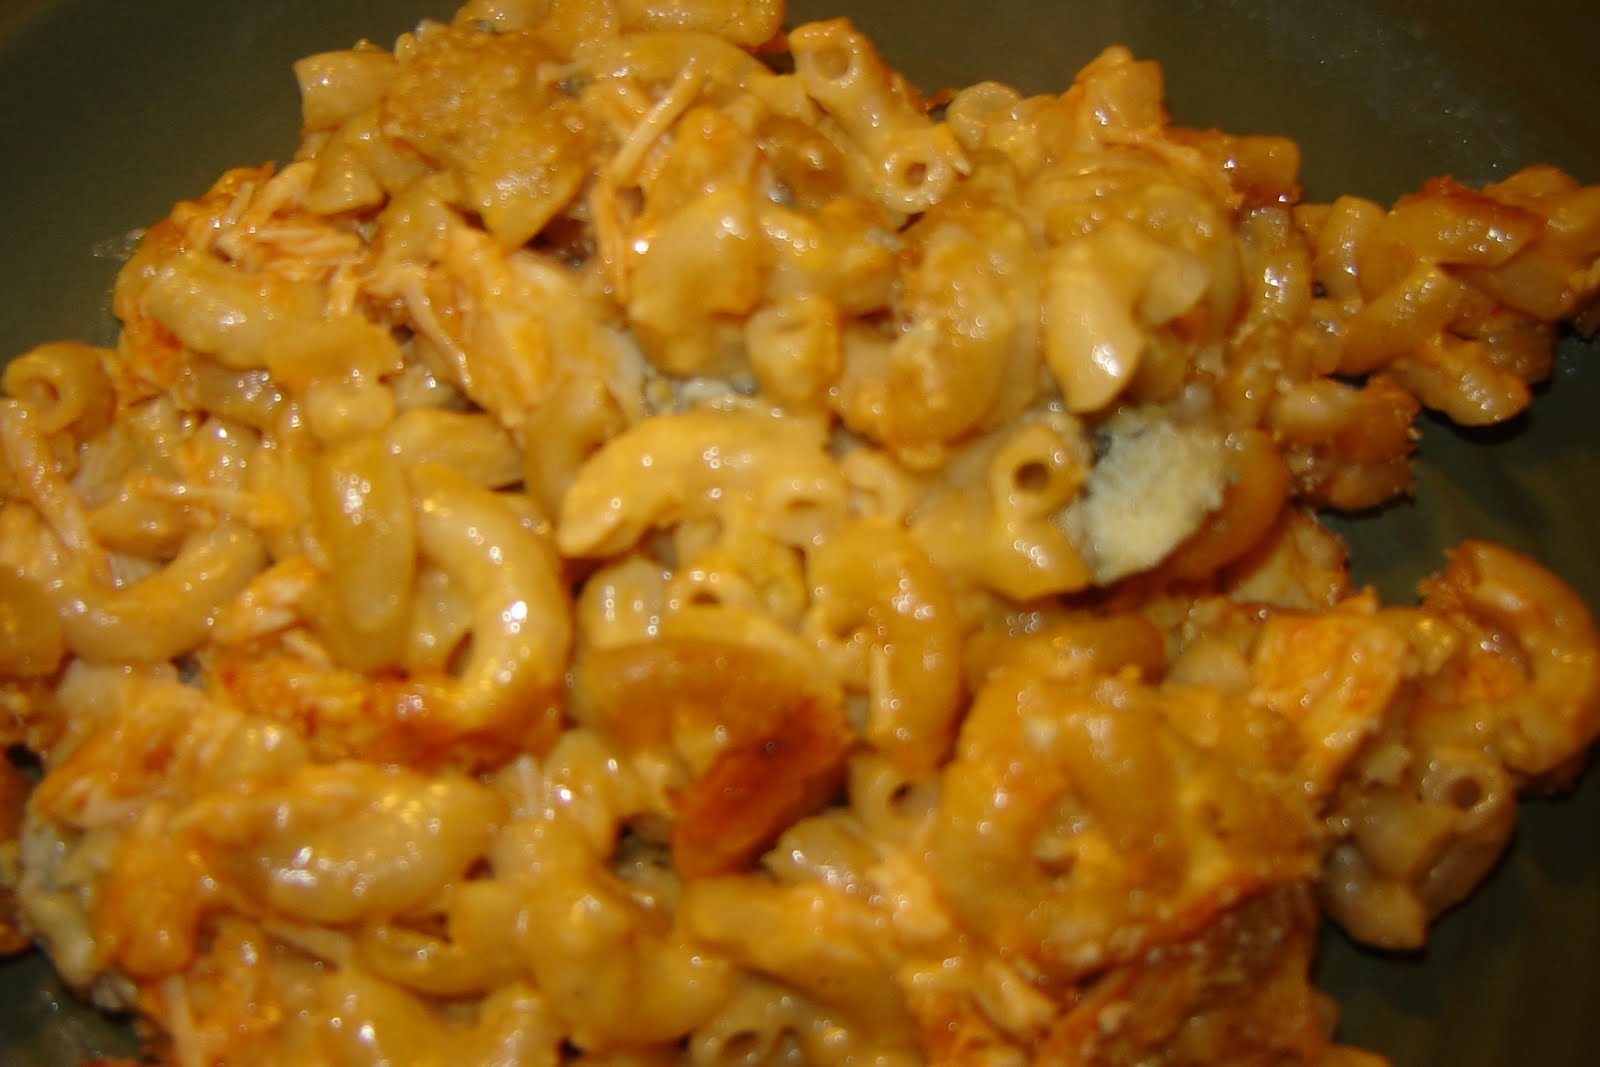 gEt iN tHe KiTcH: Buffalo-Chicken Macaroni & Cheese